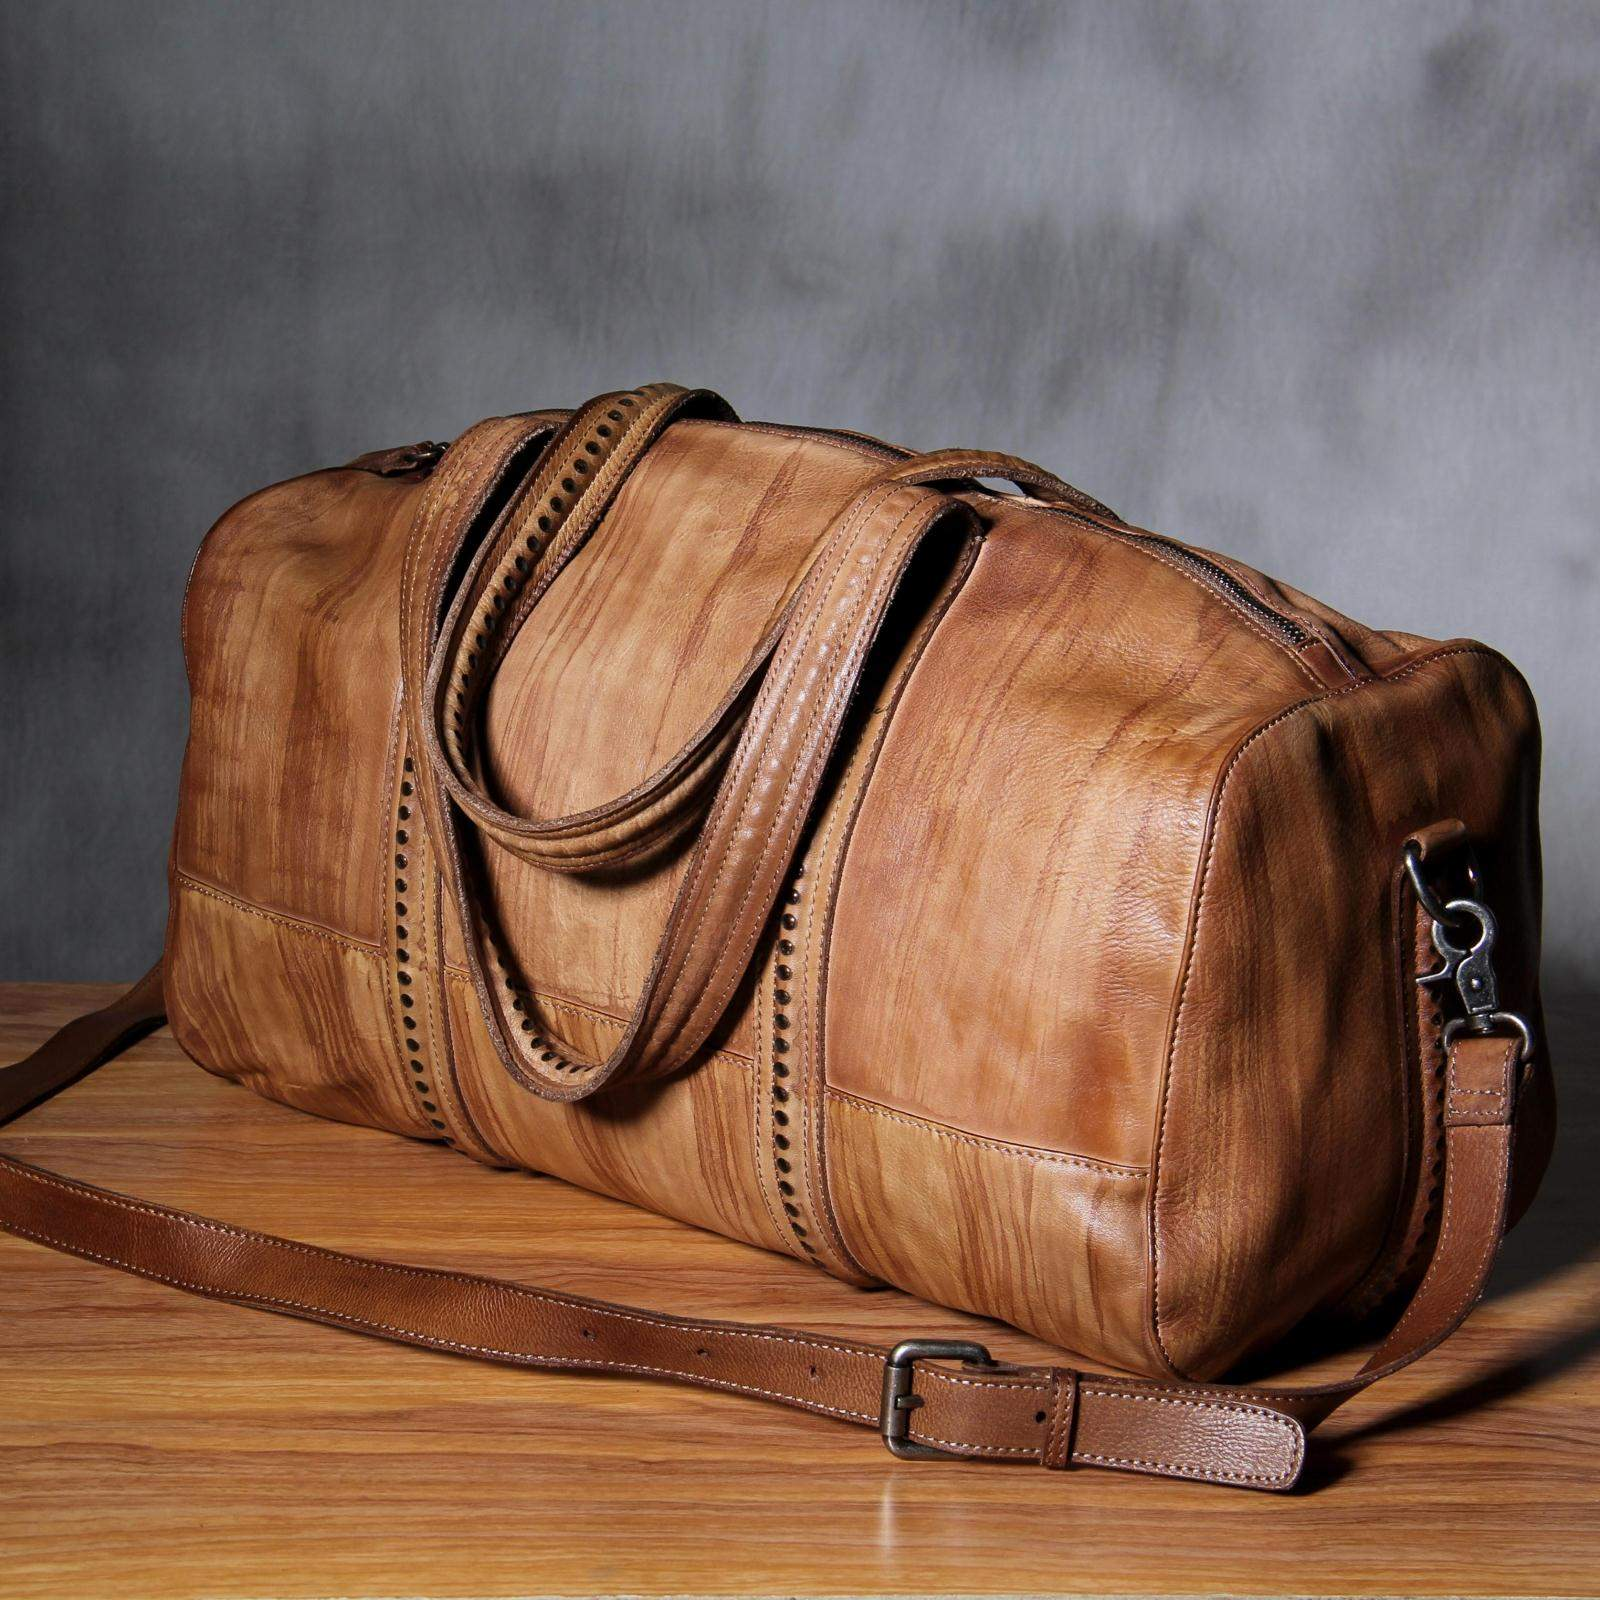 7c269c72a Original Handmade Leather Duffel Bag, Handbags, Travel Bags YS8766 -  EchoPurse